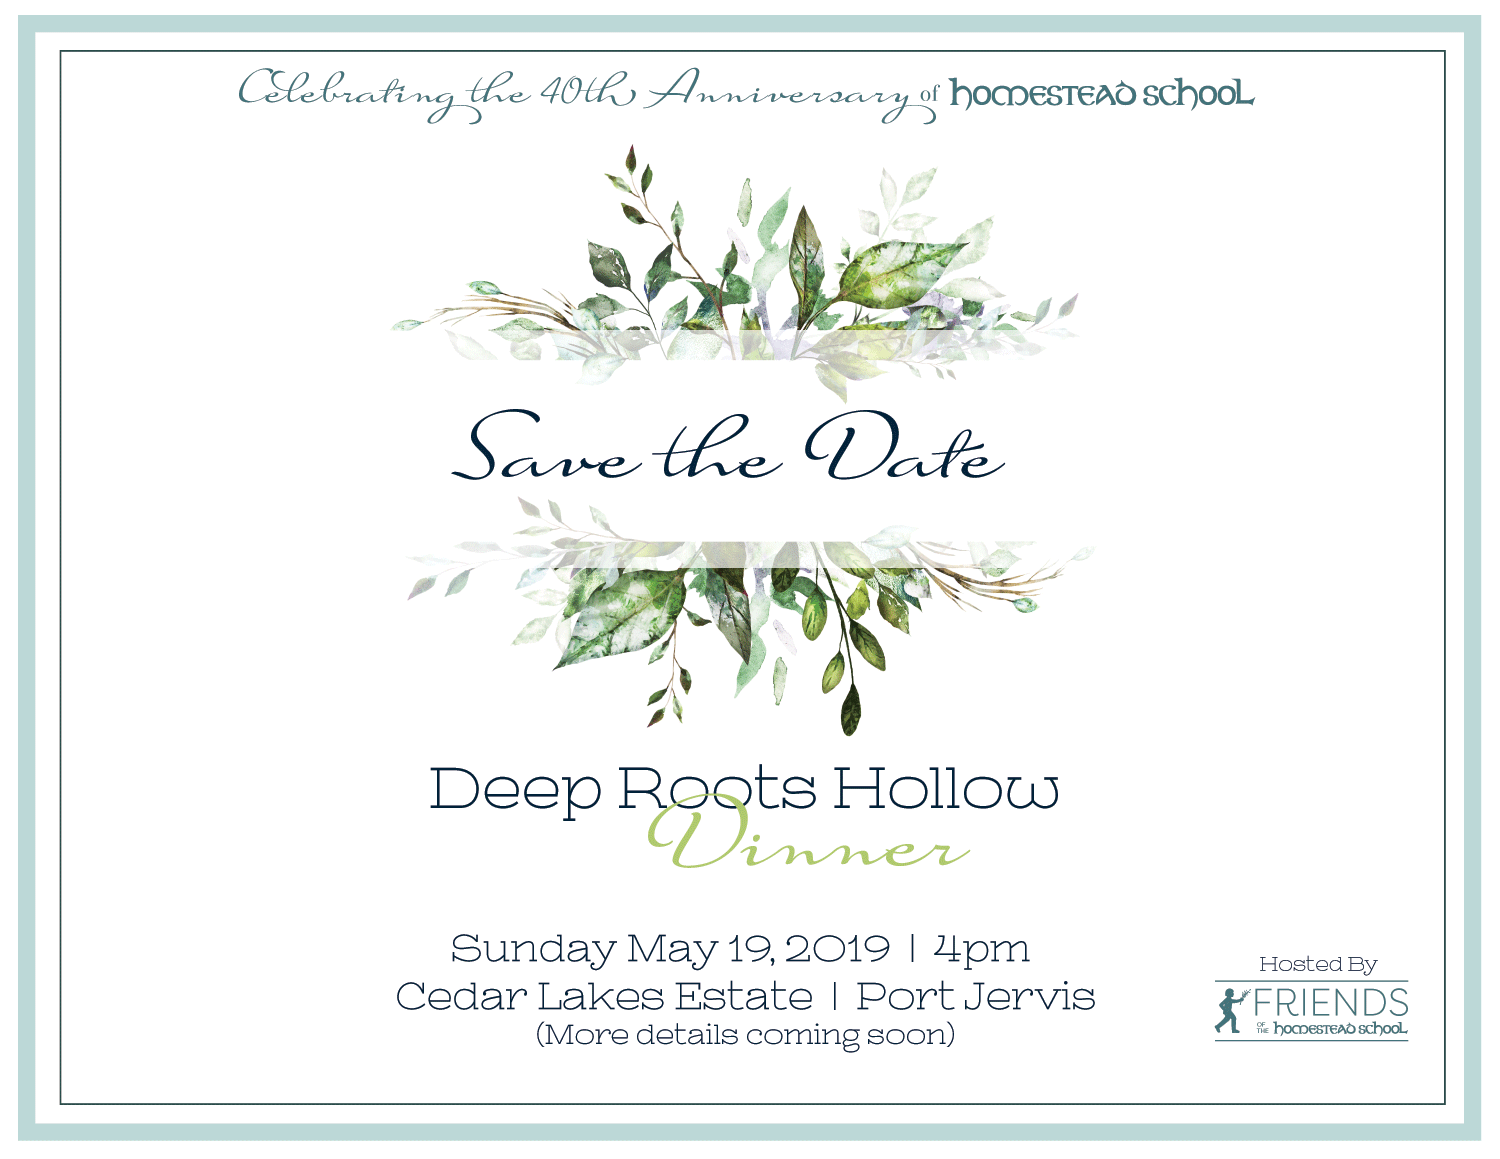 Friends of Homestead School   Glen Spey, NY   Save The Date card for an anniversary dinner event honoring Homestead School.